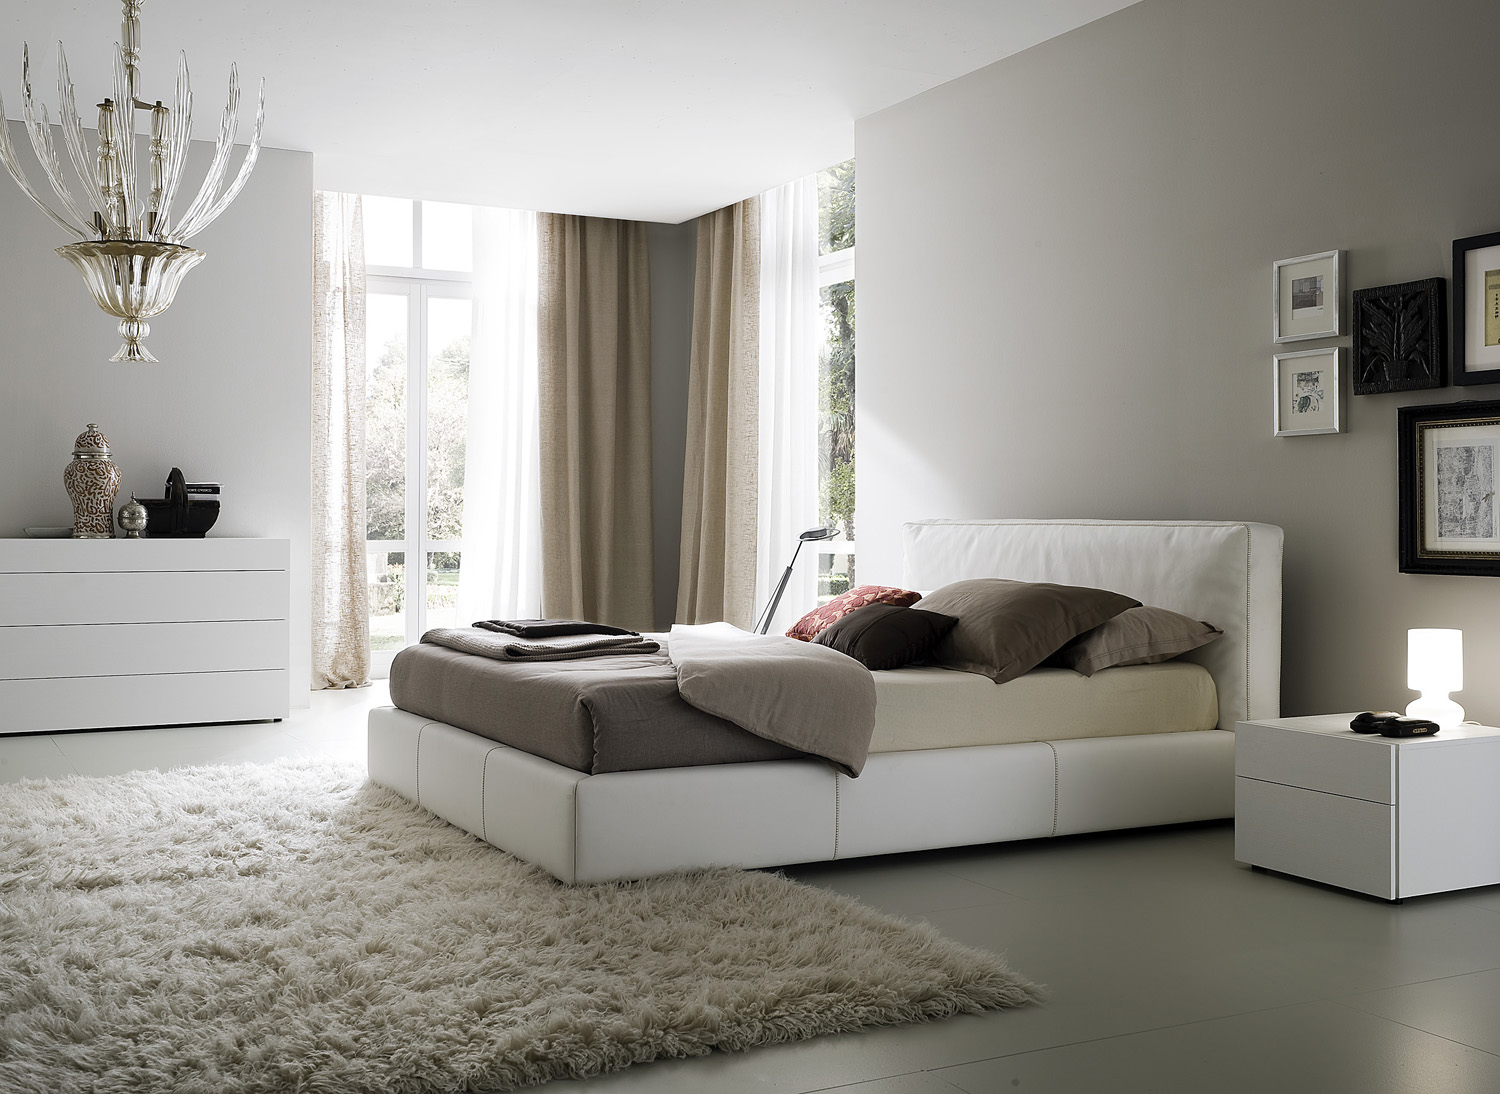 Bedroom Decorating bedroom decorating ideas from evinco